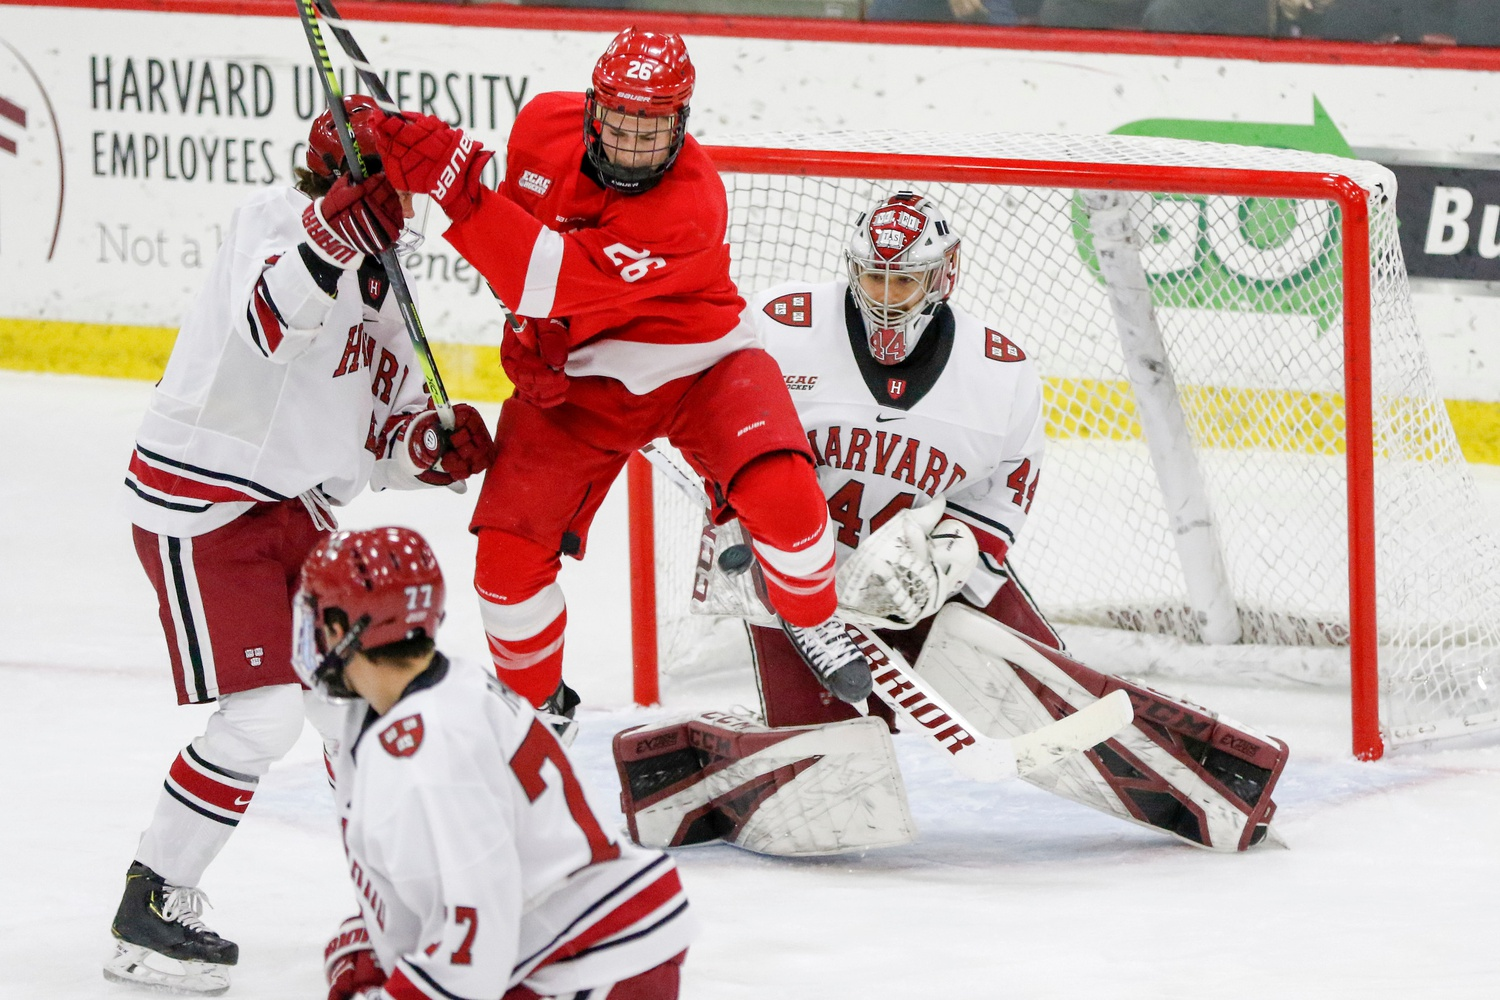 The Cornell forwards made it difficult for freshman goaltender Mitchell Gibson all night. To Gibson's credit, he hung in and gave his team a chance to win, but the play of the skaters in front of him failed to muster enough force.